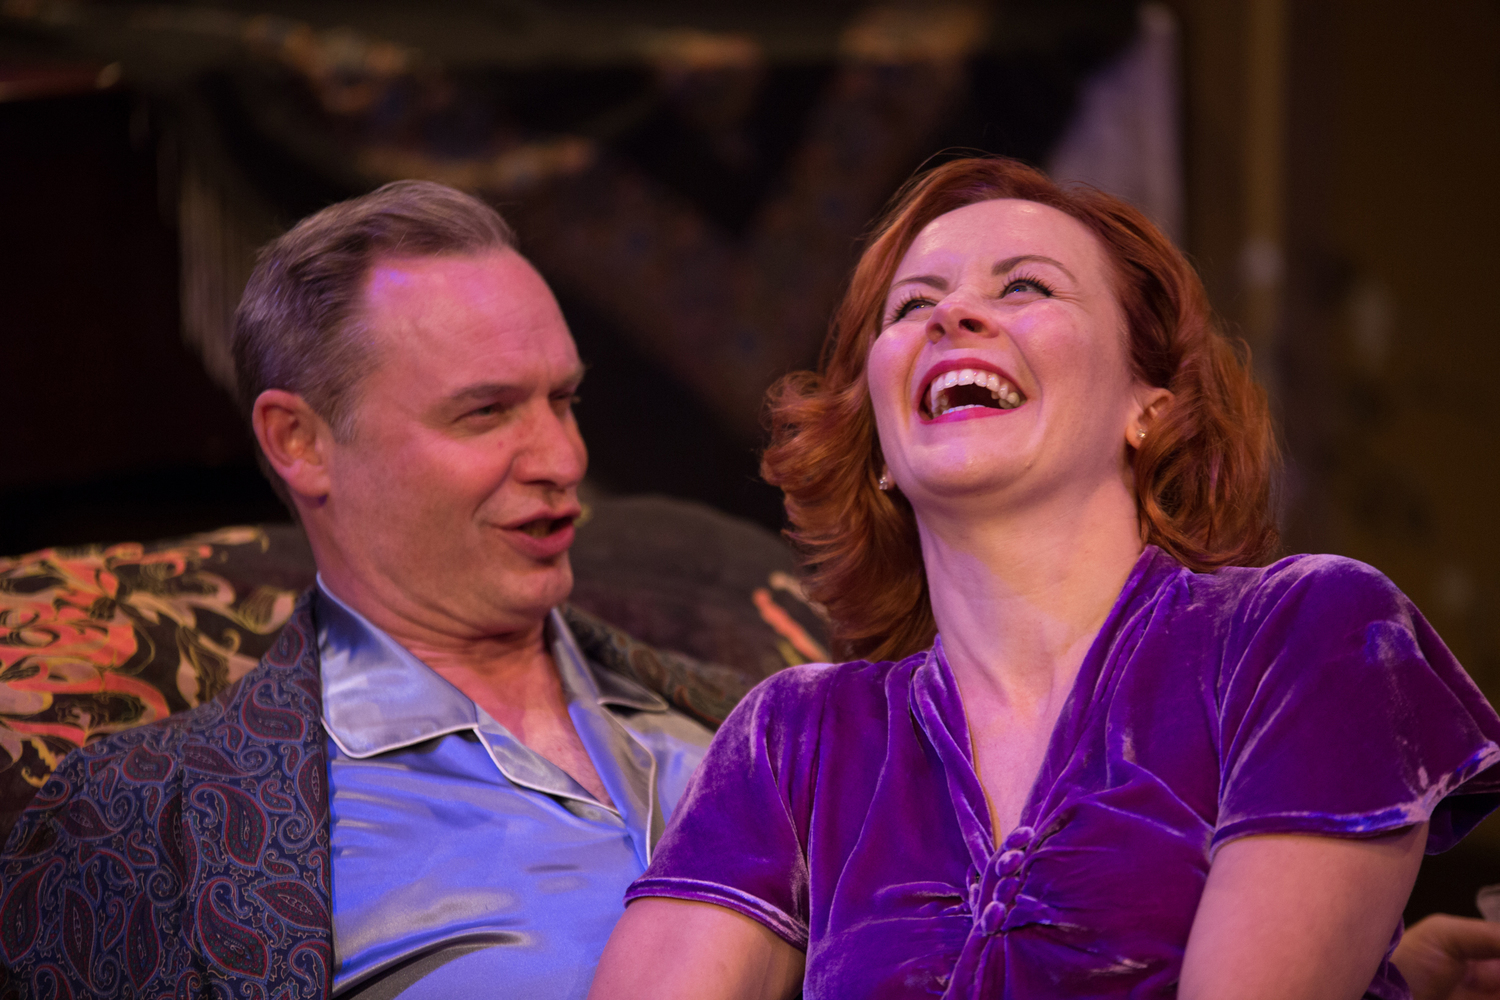 BWW Review: PRIVATE LIVES, The Mill at Sonning Theatre